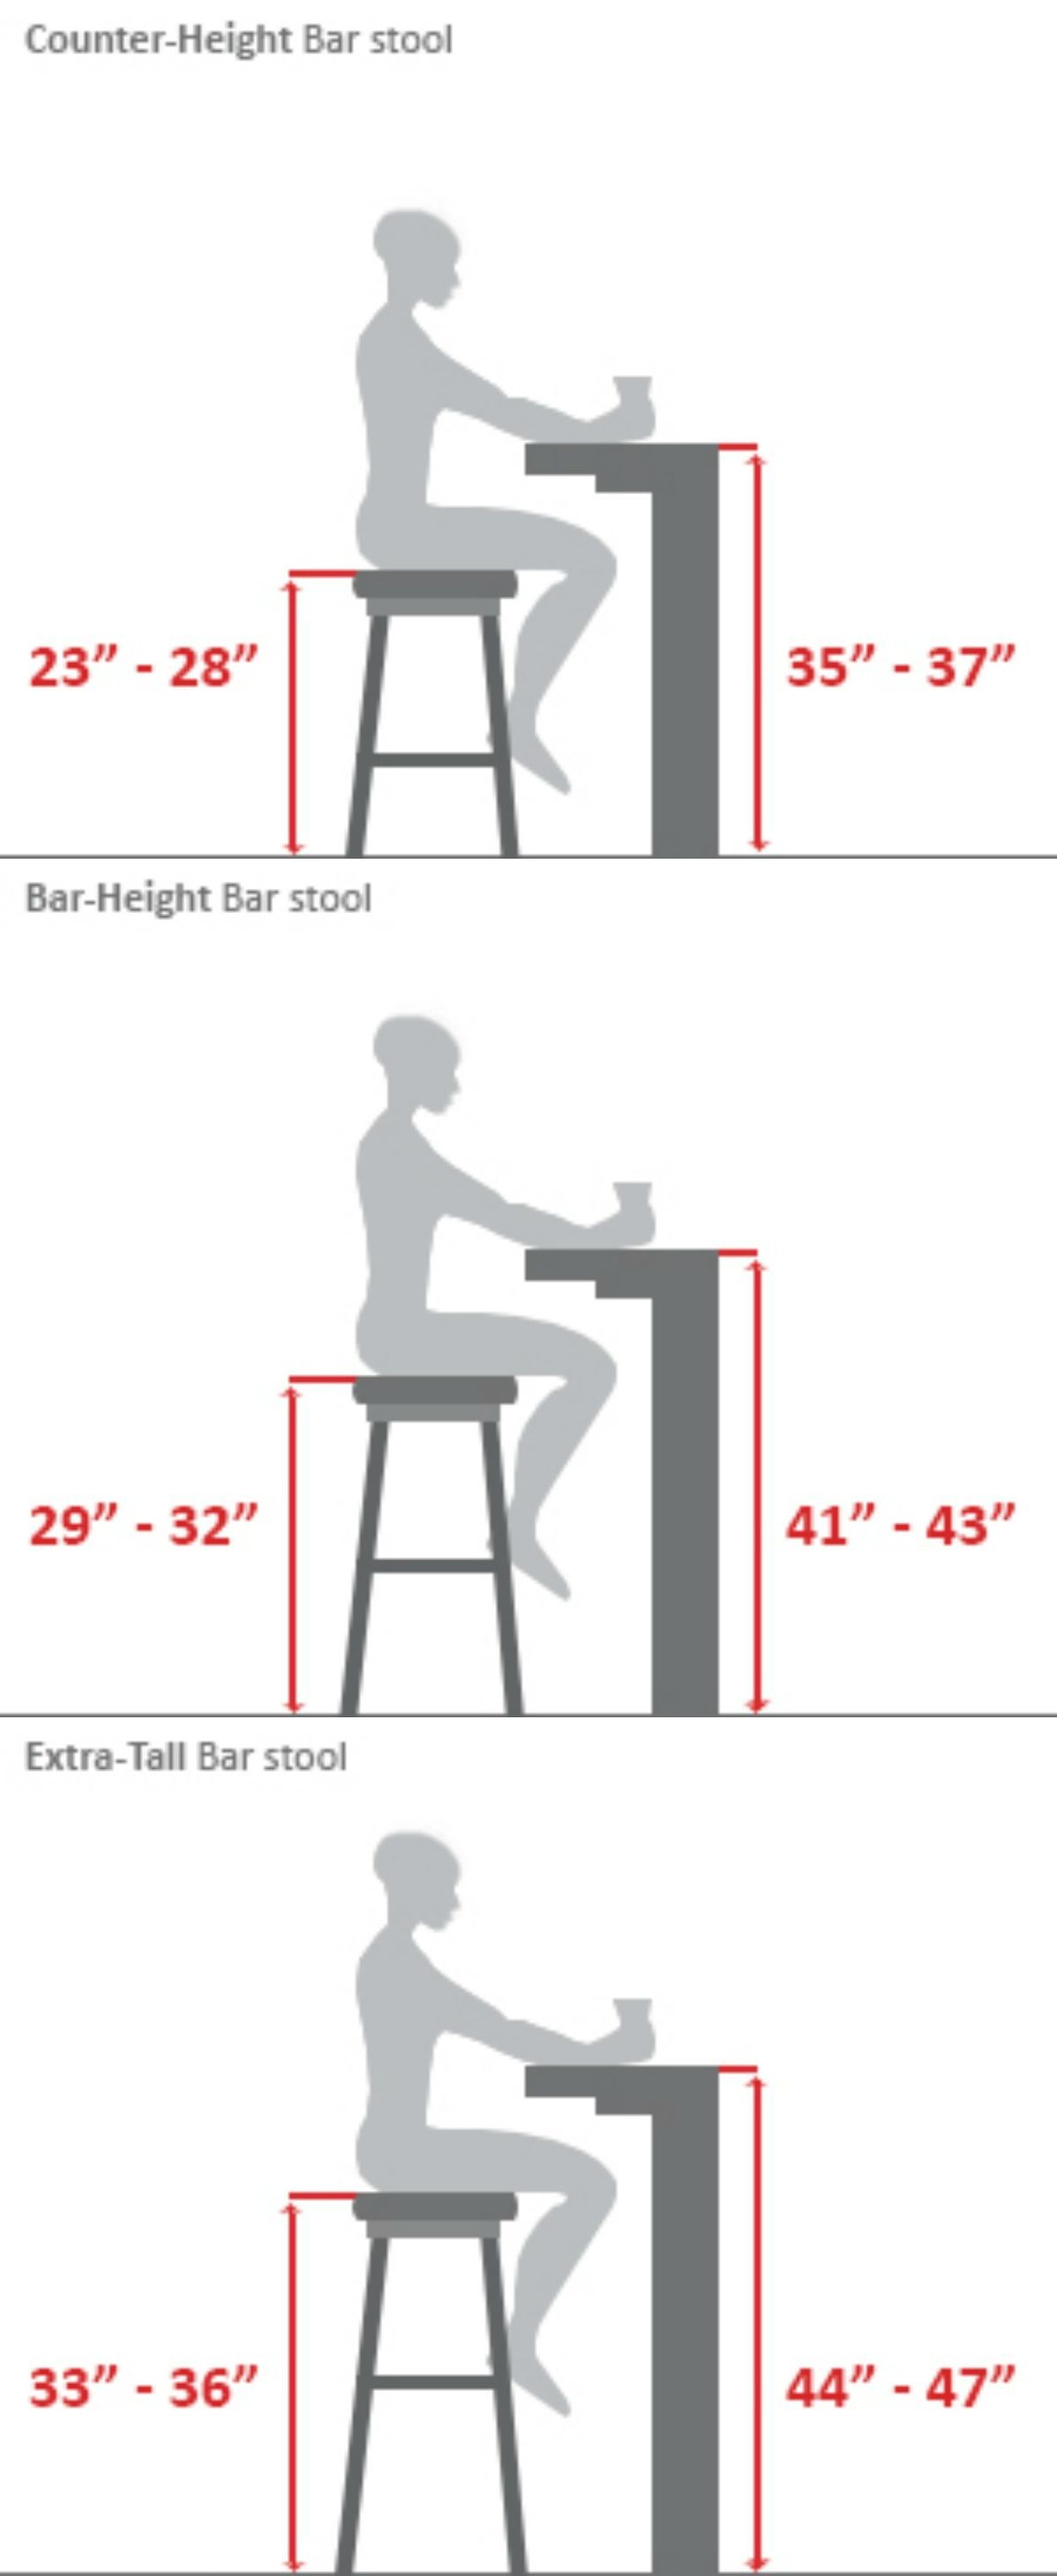 Bar stool sizing guide. | TALLER | Pinterest | Terrazas, Taburetes ...